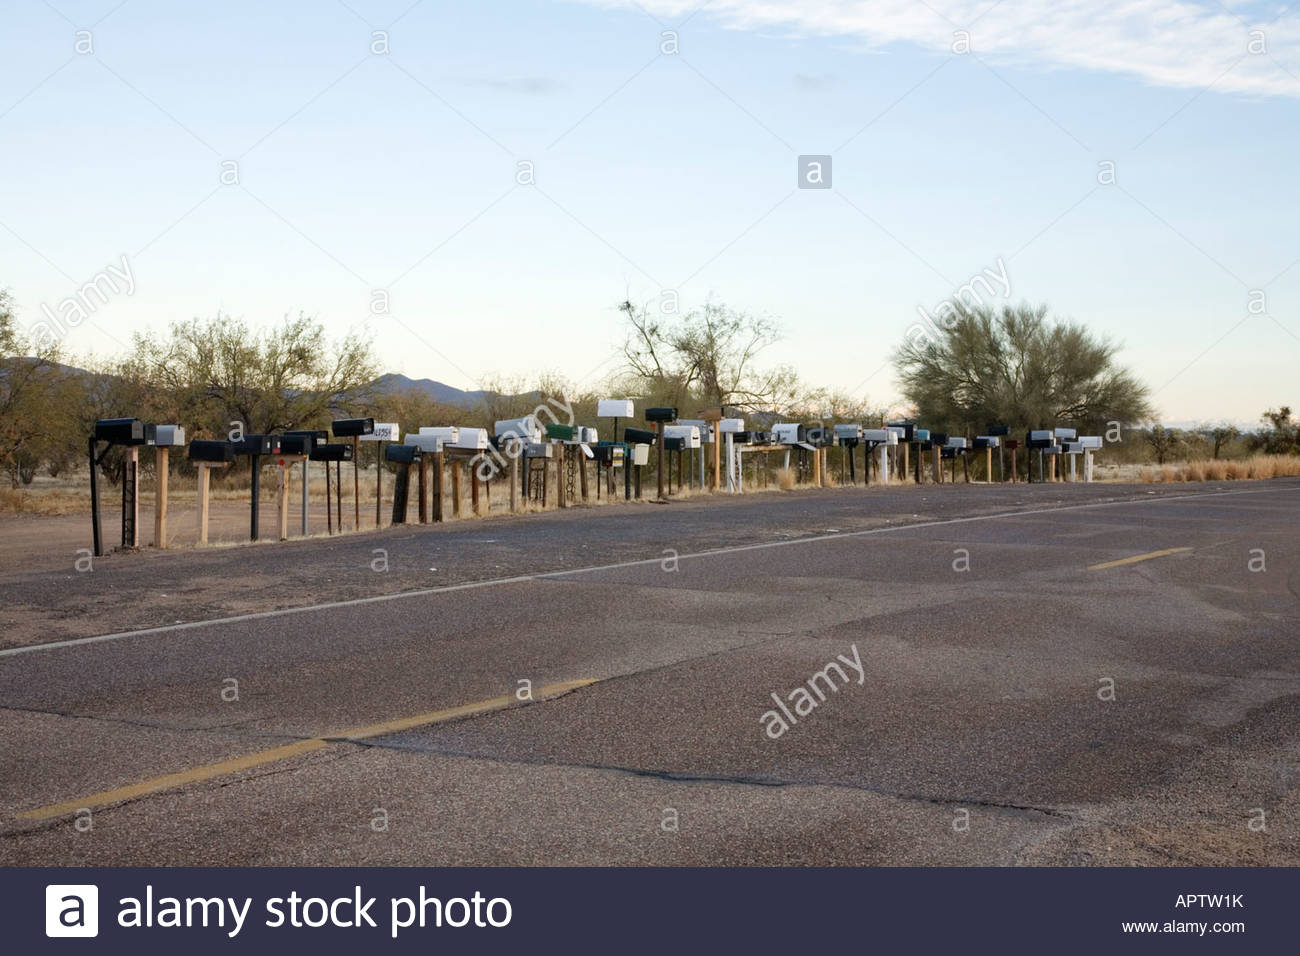 Large group of mailboxes along rural road rural mailboxes mail boxes Stock Photo